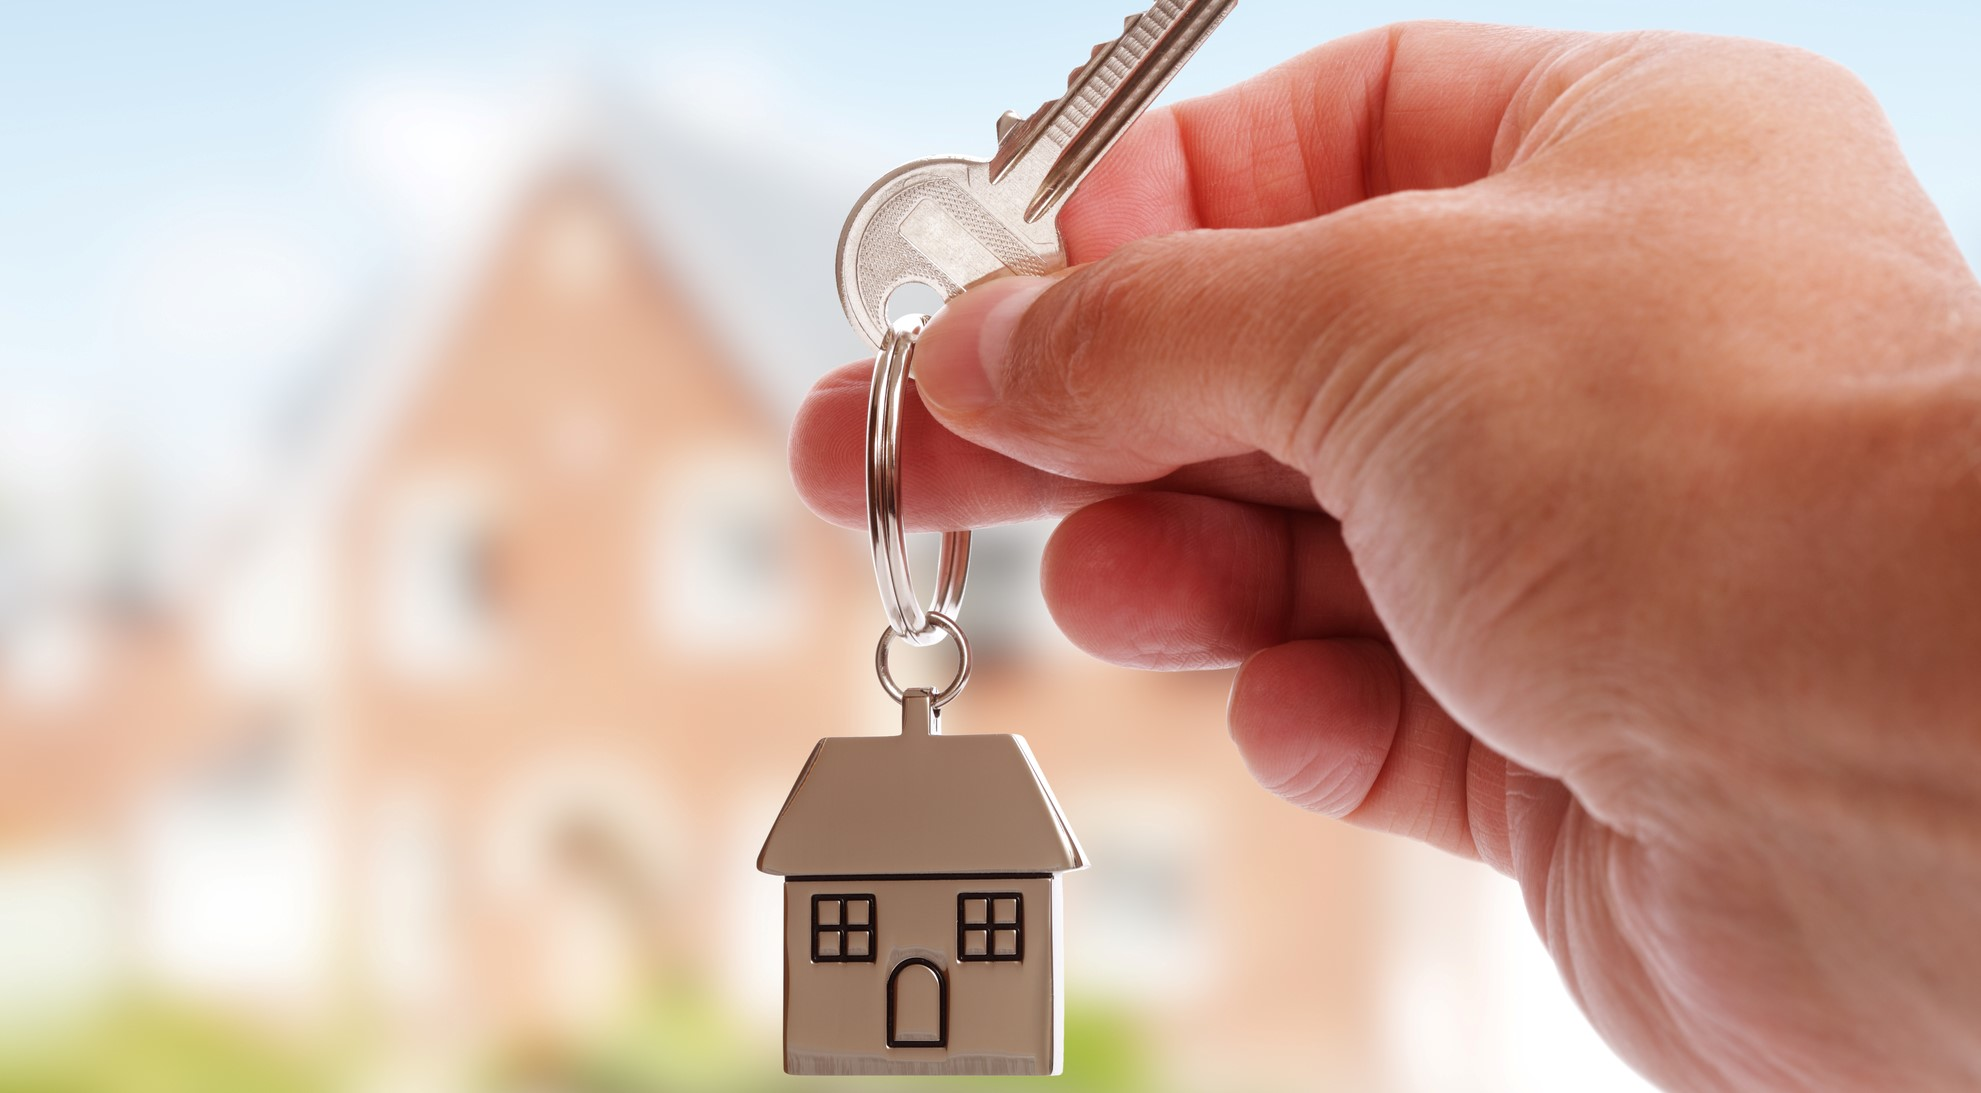 Image of person holding a keyring in the shape of a house